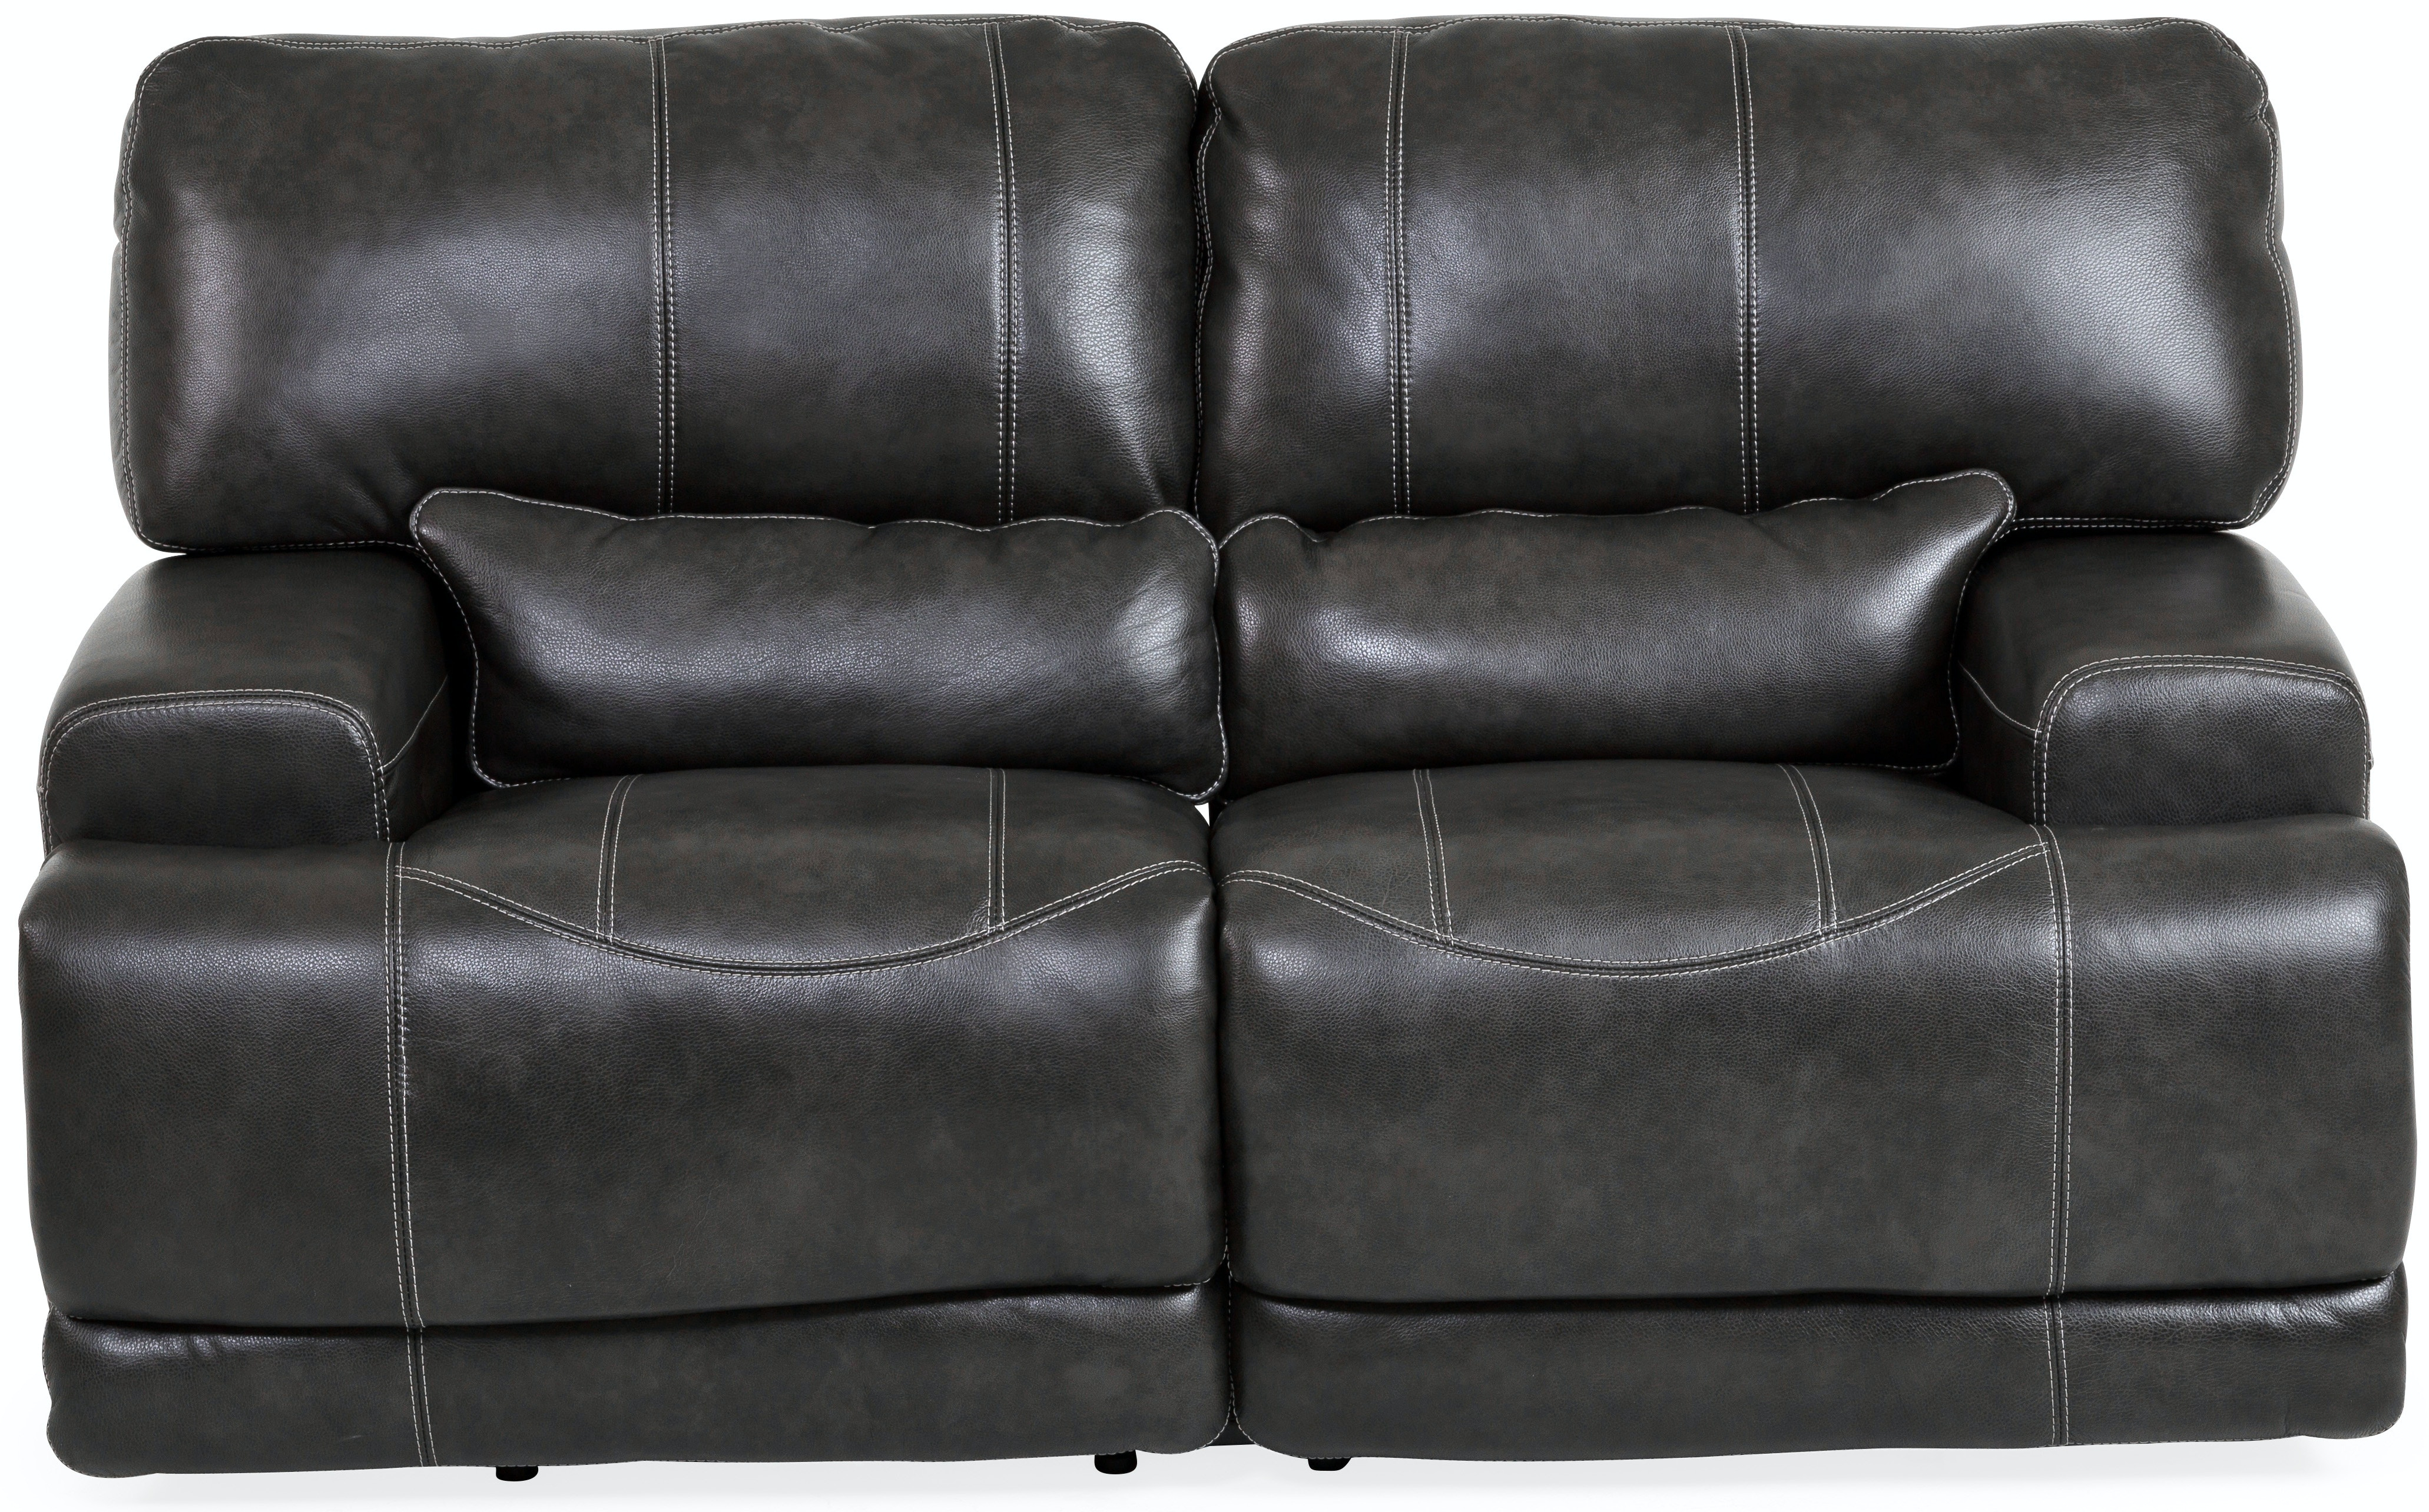 Stampede Leather Power Reclining Loveseat   CHARCOAL ST:422615